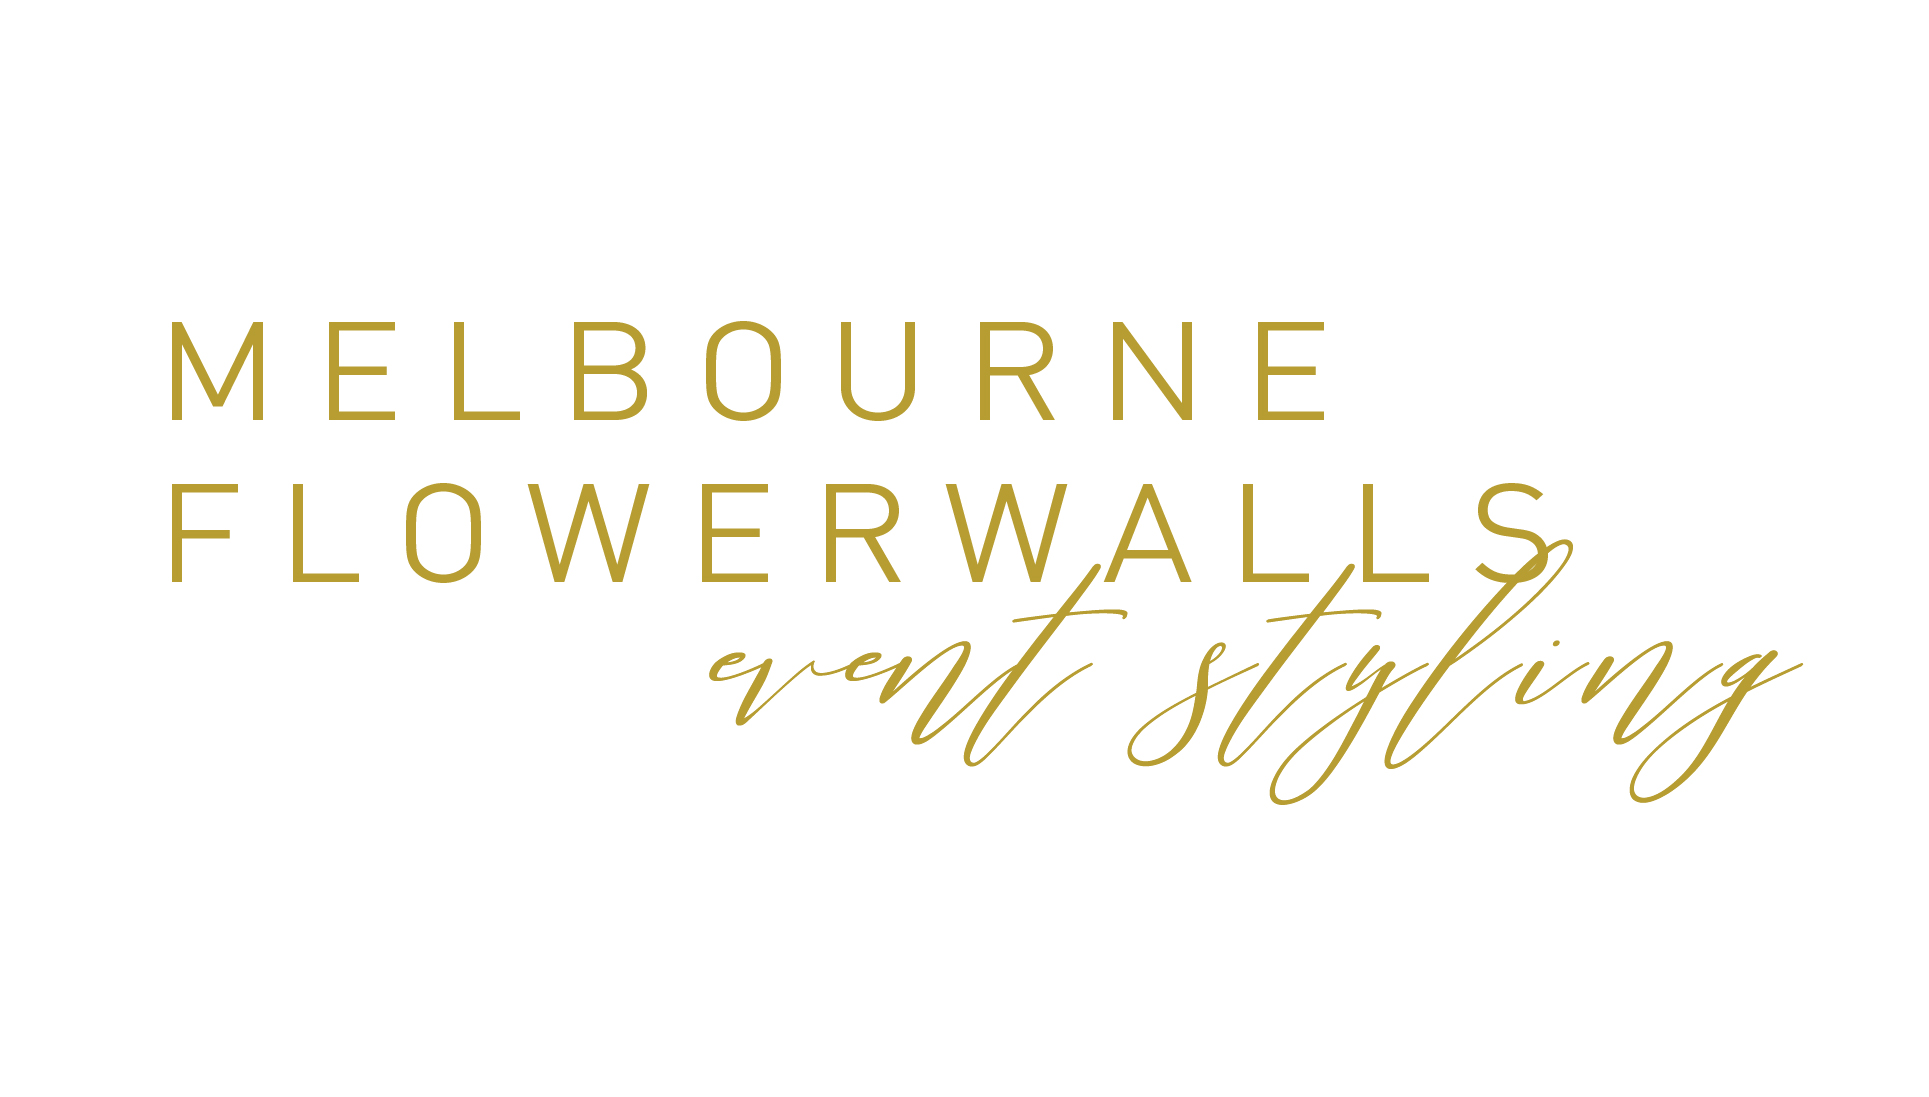 Melbourne flower walls logo